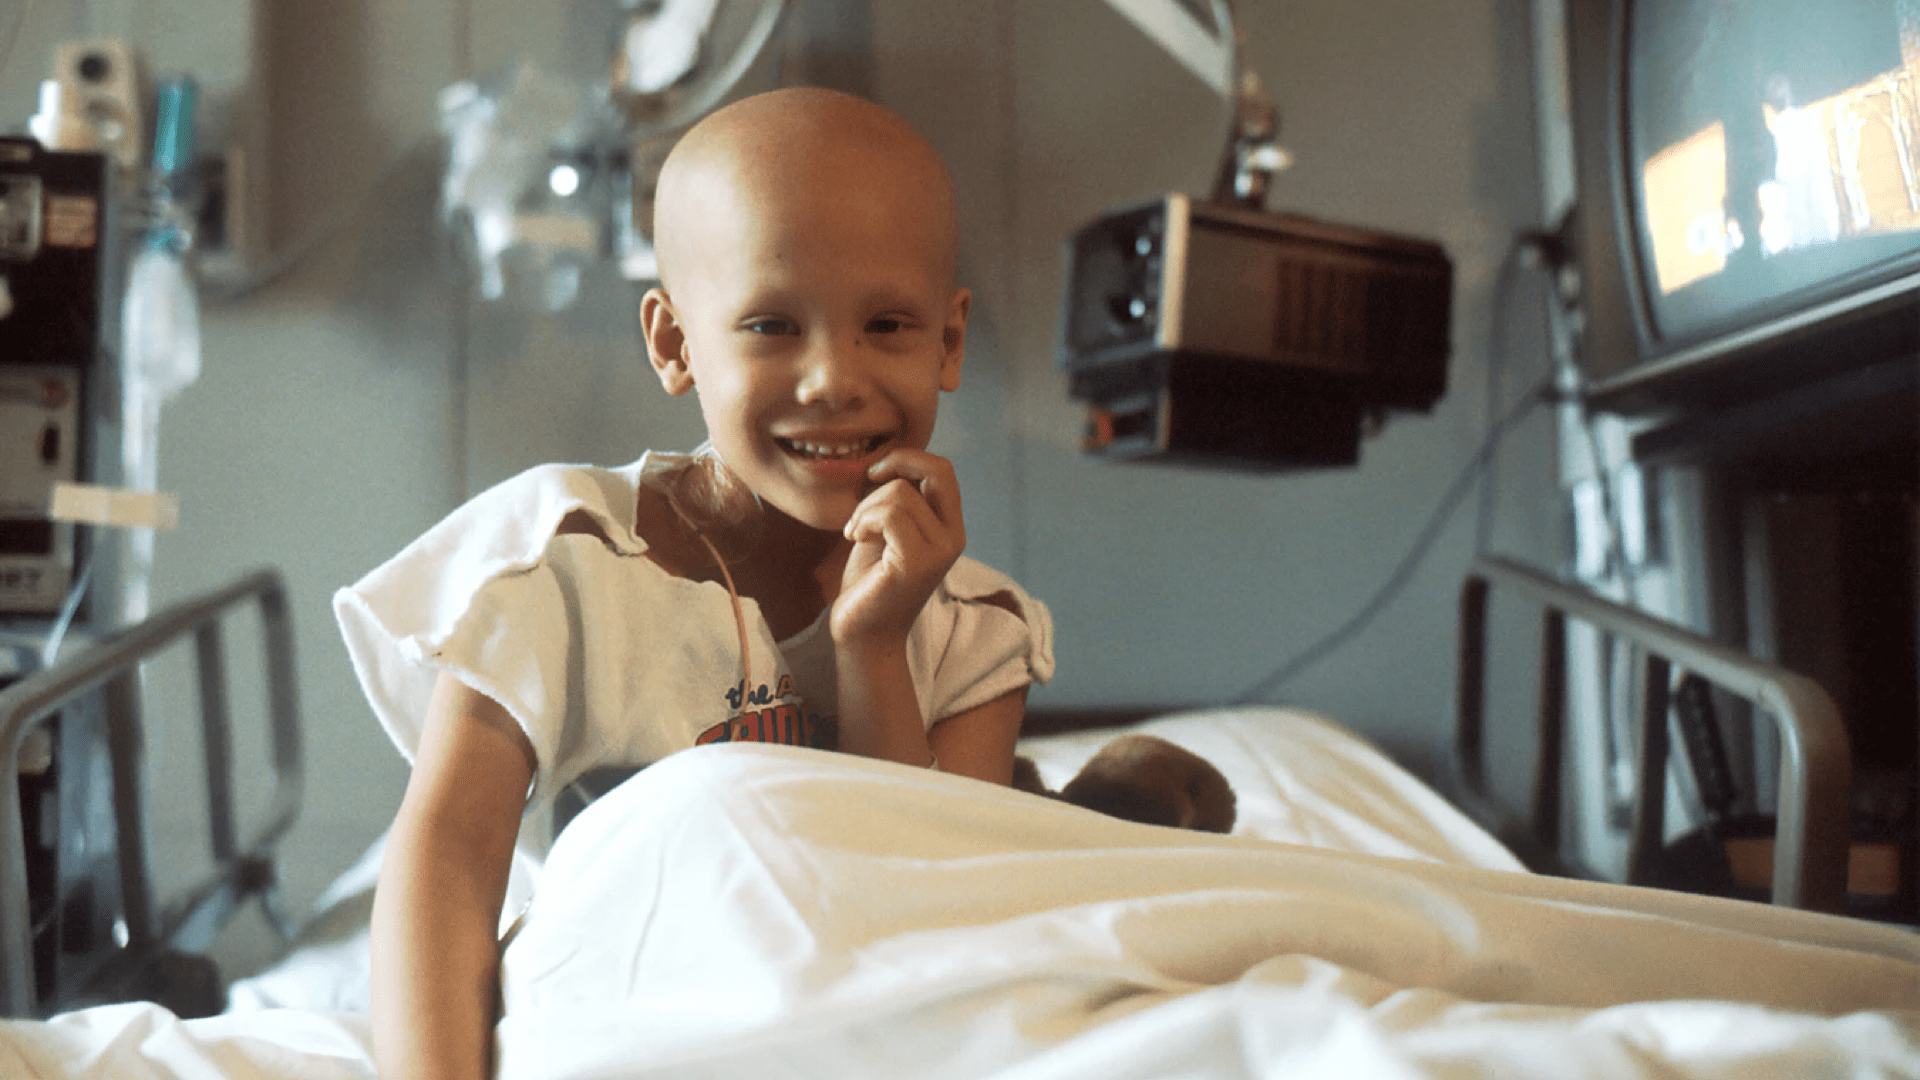 Familes turn to crowdfunding to fundraise for medical treatment in South Africa